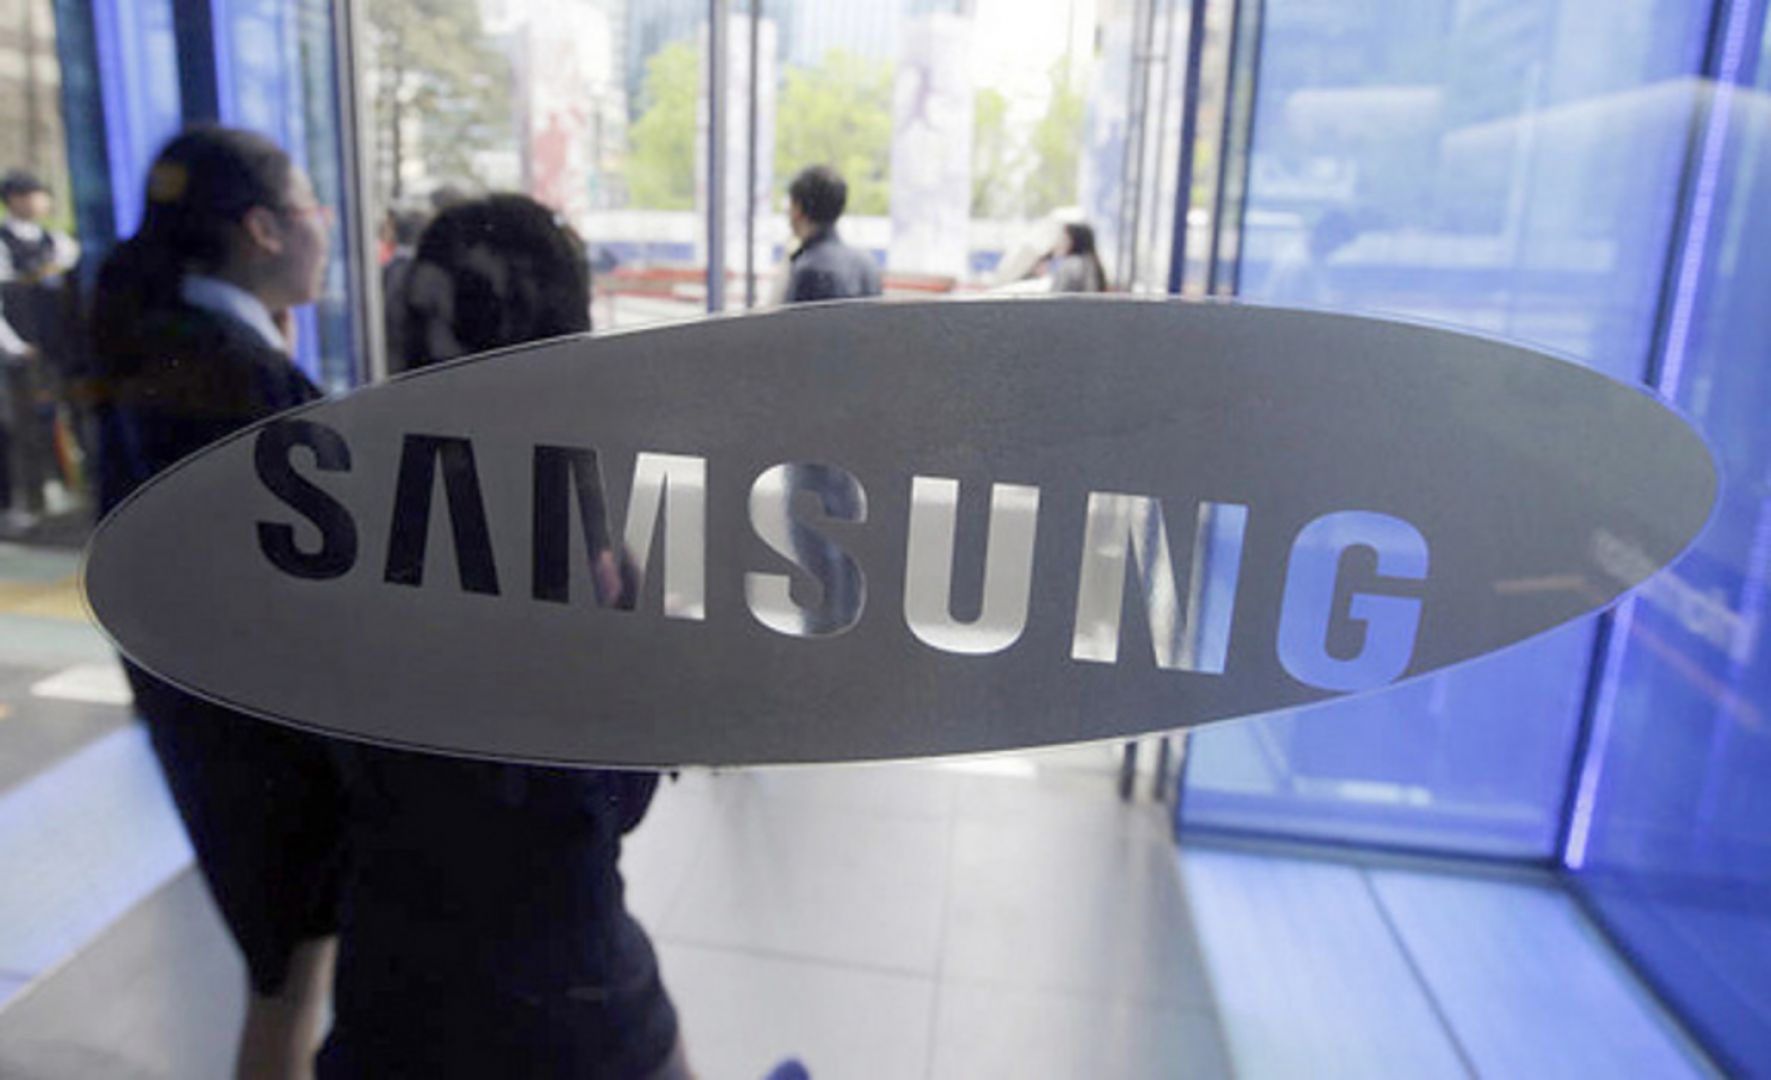 Visitors at a Samsung showroom in Seoul. The company, South Korea's biggest in terms of sales, said last month that it would offer a one-year optional sabbatical for those who have been working for more than three years. Photo: AP